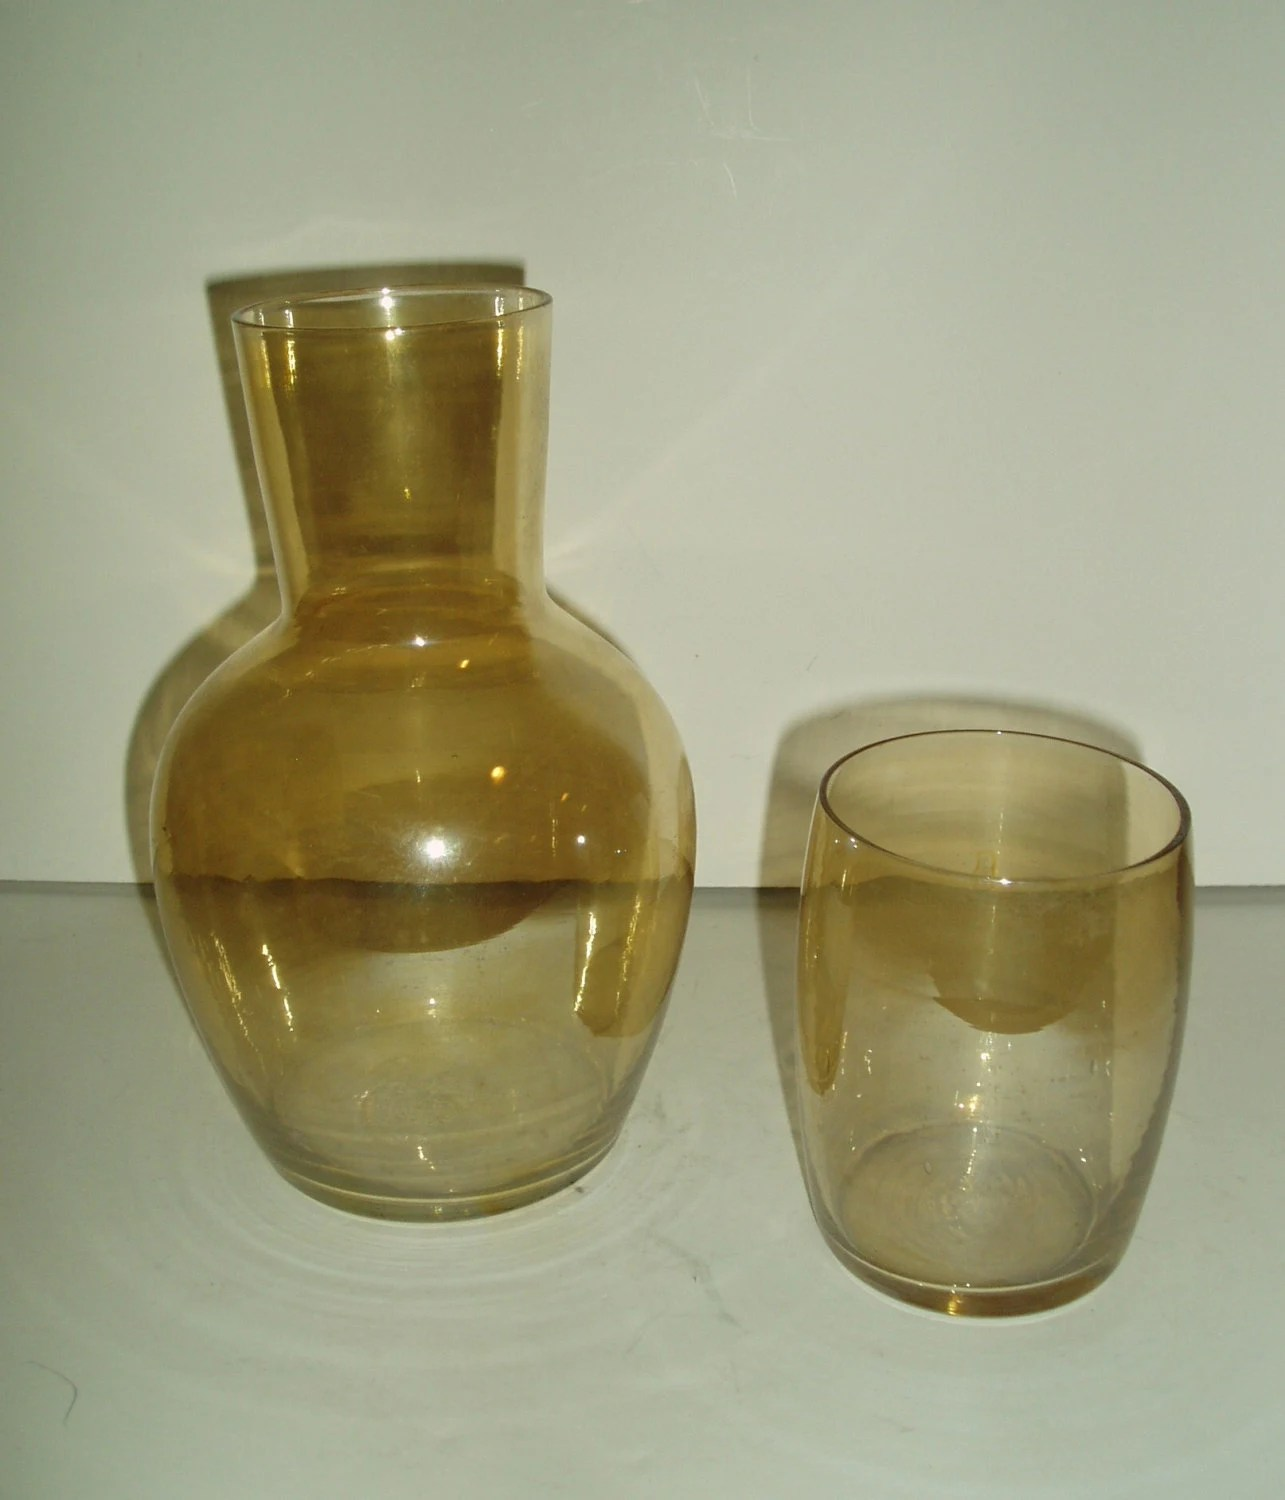 Bedside Water Carafe And Glass Vintage Amber Glass Bedside Water Carafe And Tumbler Set